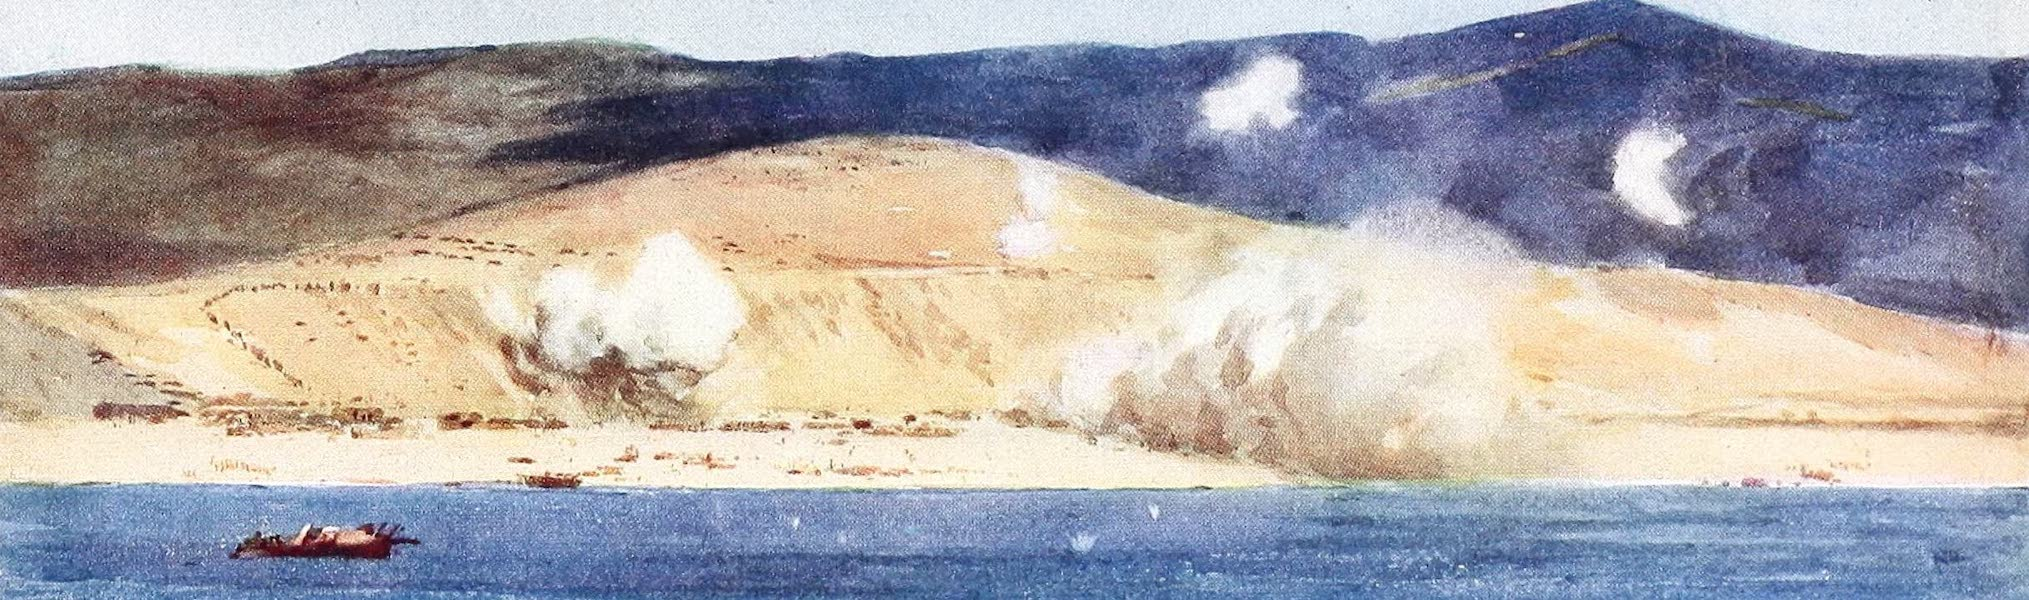 The Dardanelles : Colour Sketches from Gallipoli - Lalla Baba (1915)